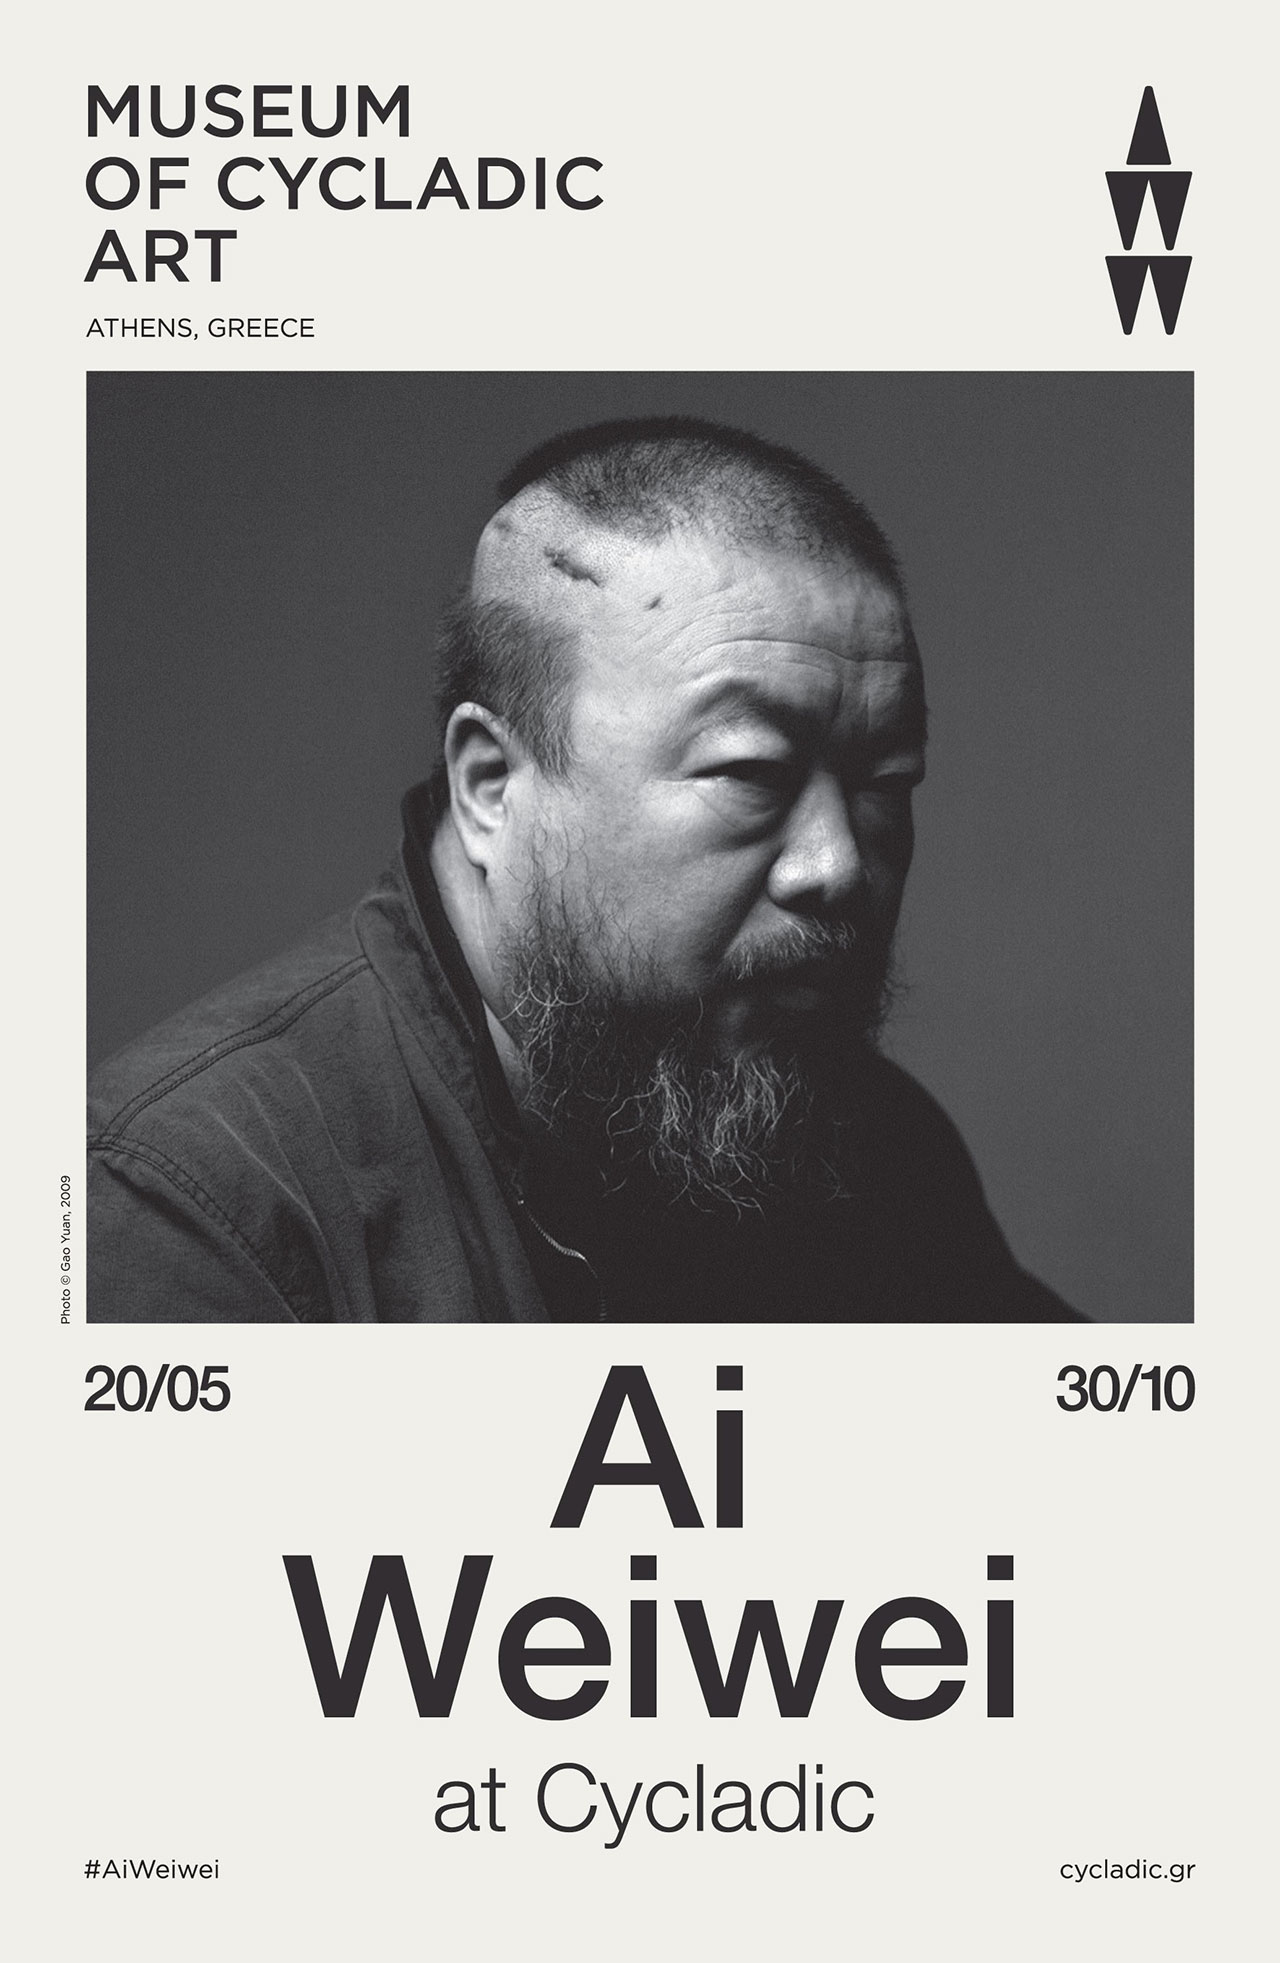 s8_ai_weiwei_at_museum_of_cycladic_art_visual_identity_poster_yatzer.jpg